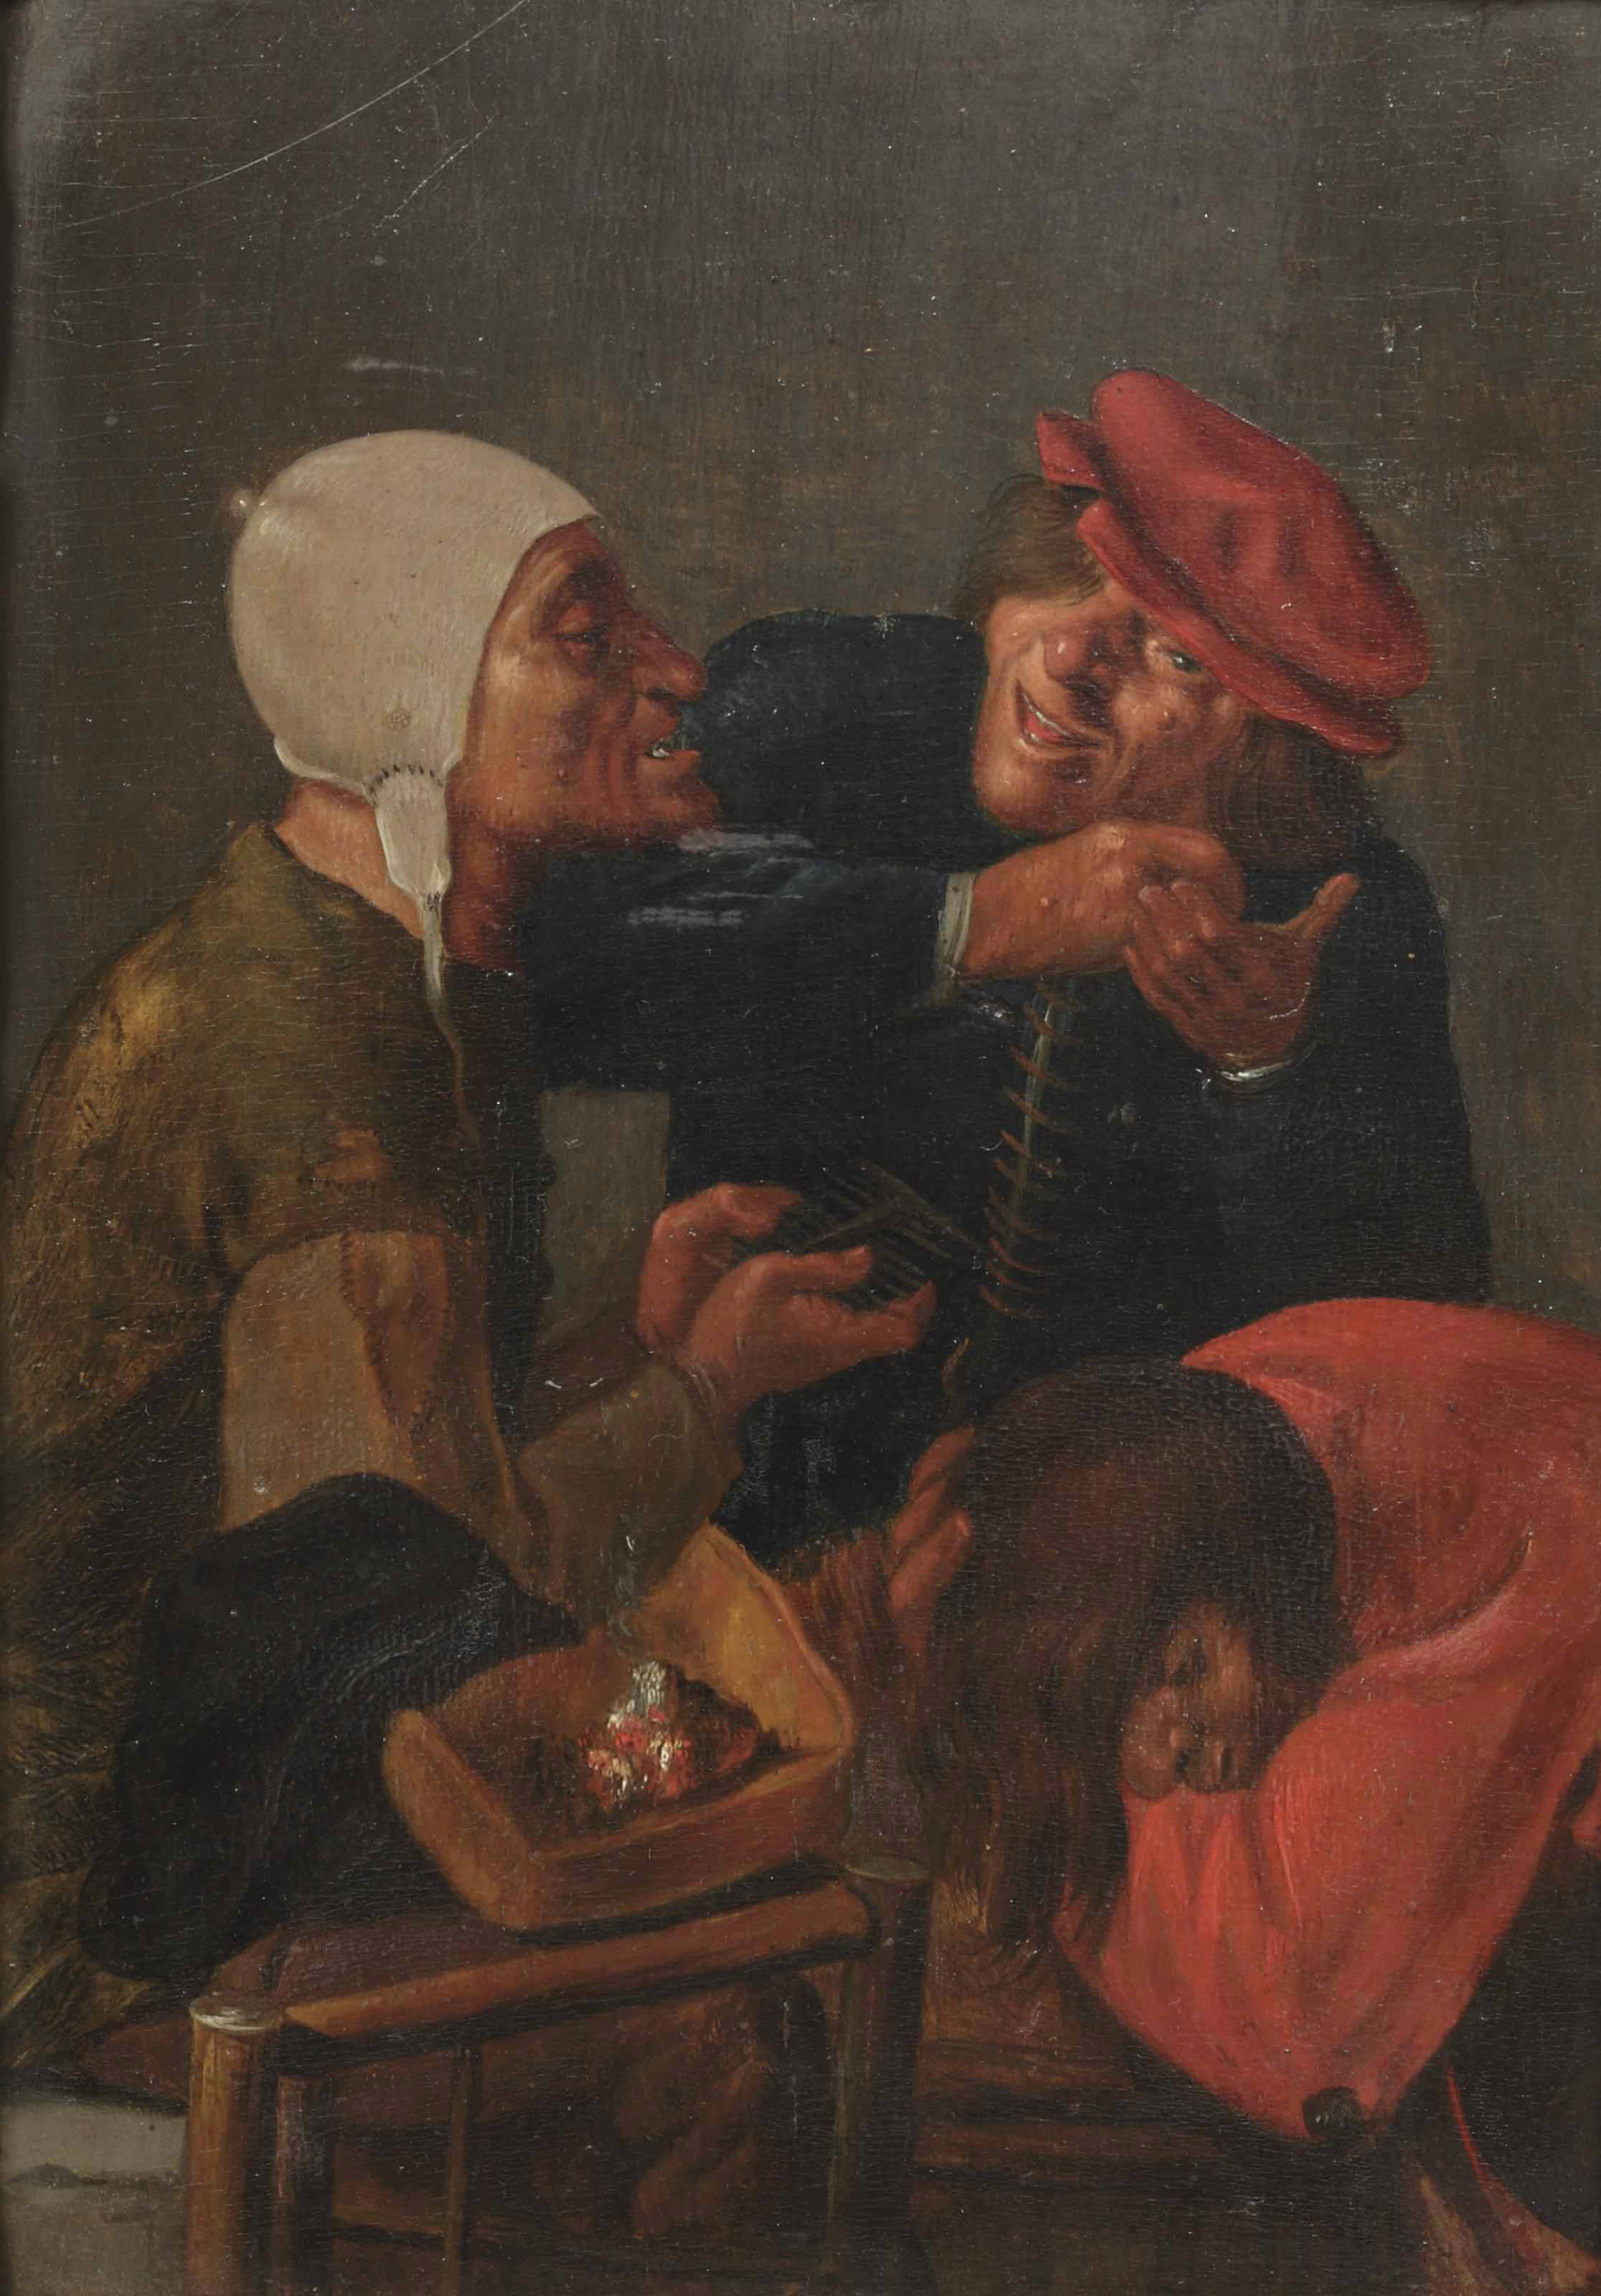 Three men delousing in an interior